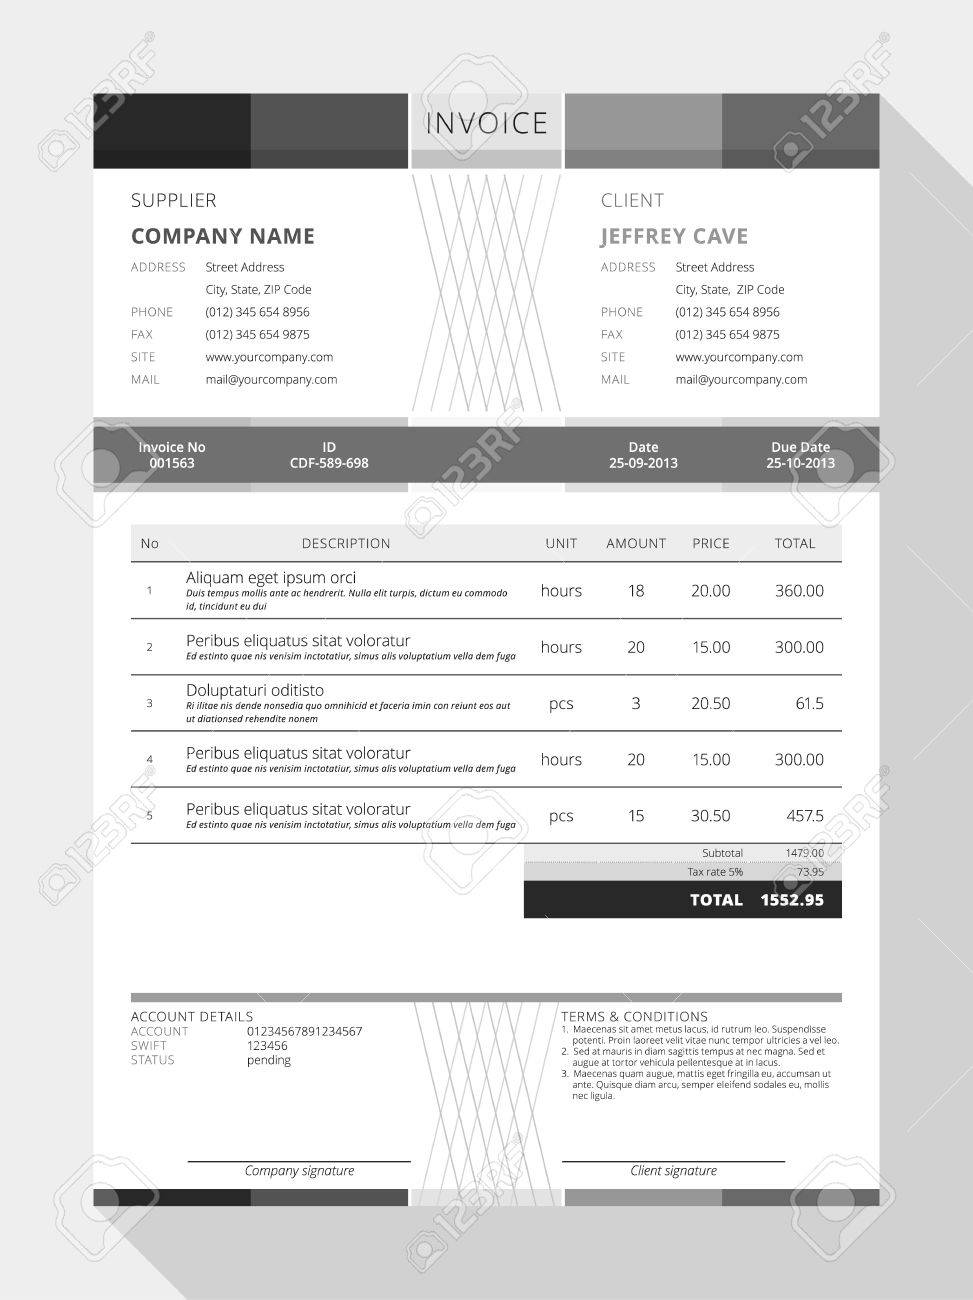 Darkfaderus  Fascinating Design An Invoice  Professional Graphic Design Invoice  With Goodlooking Vector Customizable Invoice Form Template Design Vector   Design An Invoice With Cute Invoice Ideas Also What To Include In An Invoice In Addition Auto Repair Invoice Sample And Free Basic Invoice Template As Well As Invoice Scan Additionally Project Management Invoicing From Happytomco With Darkfaderus  Goodlooking Design An Invoice  Professional Graphic Design Invoice  With Cute Vector Customizable Invoice Form Template Design Vector   Design An Invoice And Fascinating Invoice Ideas Also What To Include In An Invoice In Addition Auto Repair Invoice Sample From Happytomco